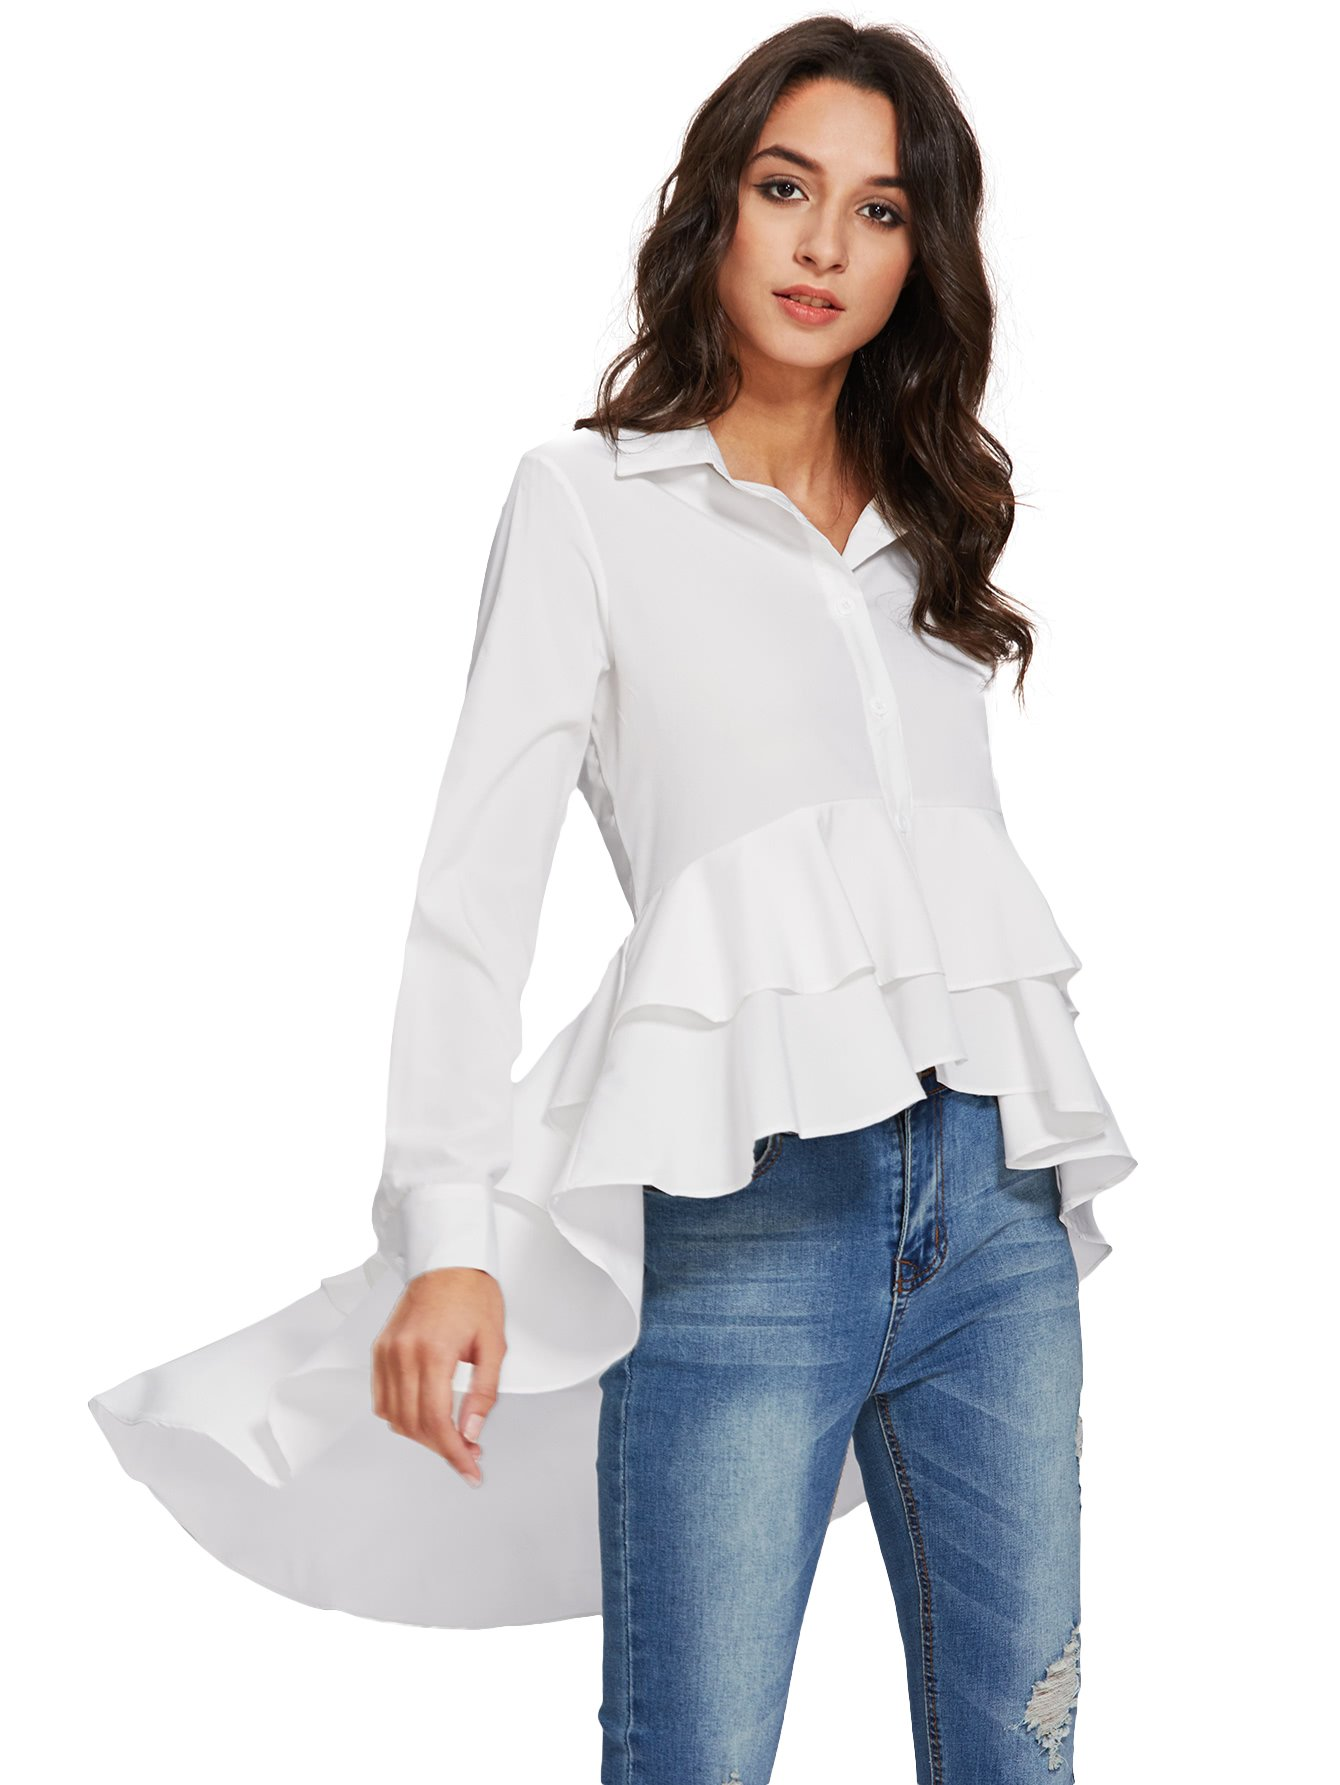 MakeMeChic Women's Long Sleeve High Low Solid Ruffle Button Loose Blouse T-Shirt Tops White S